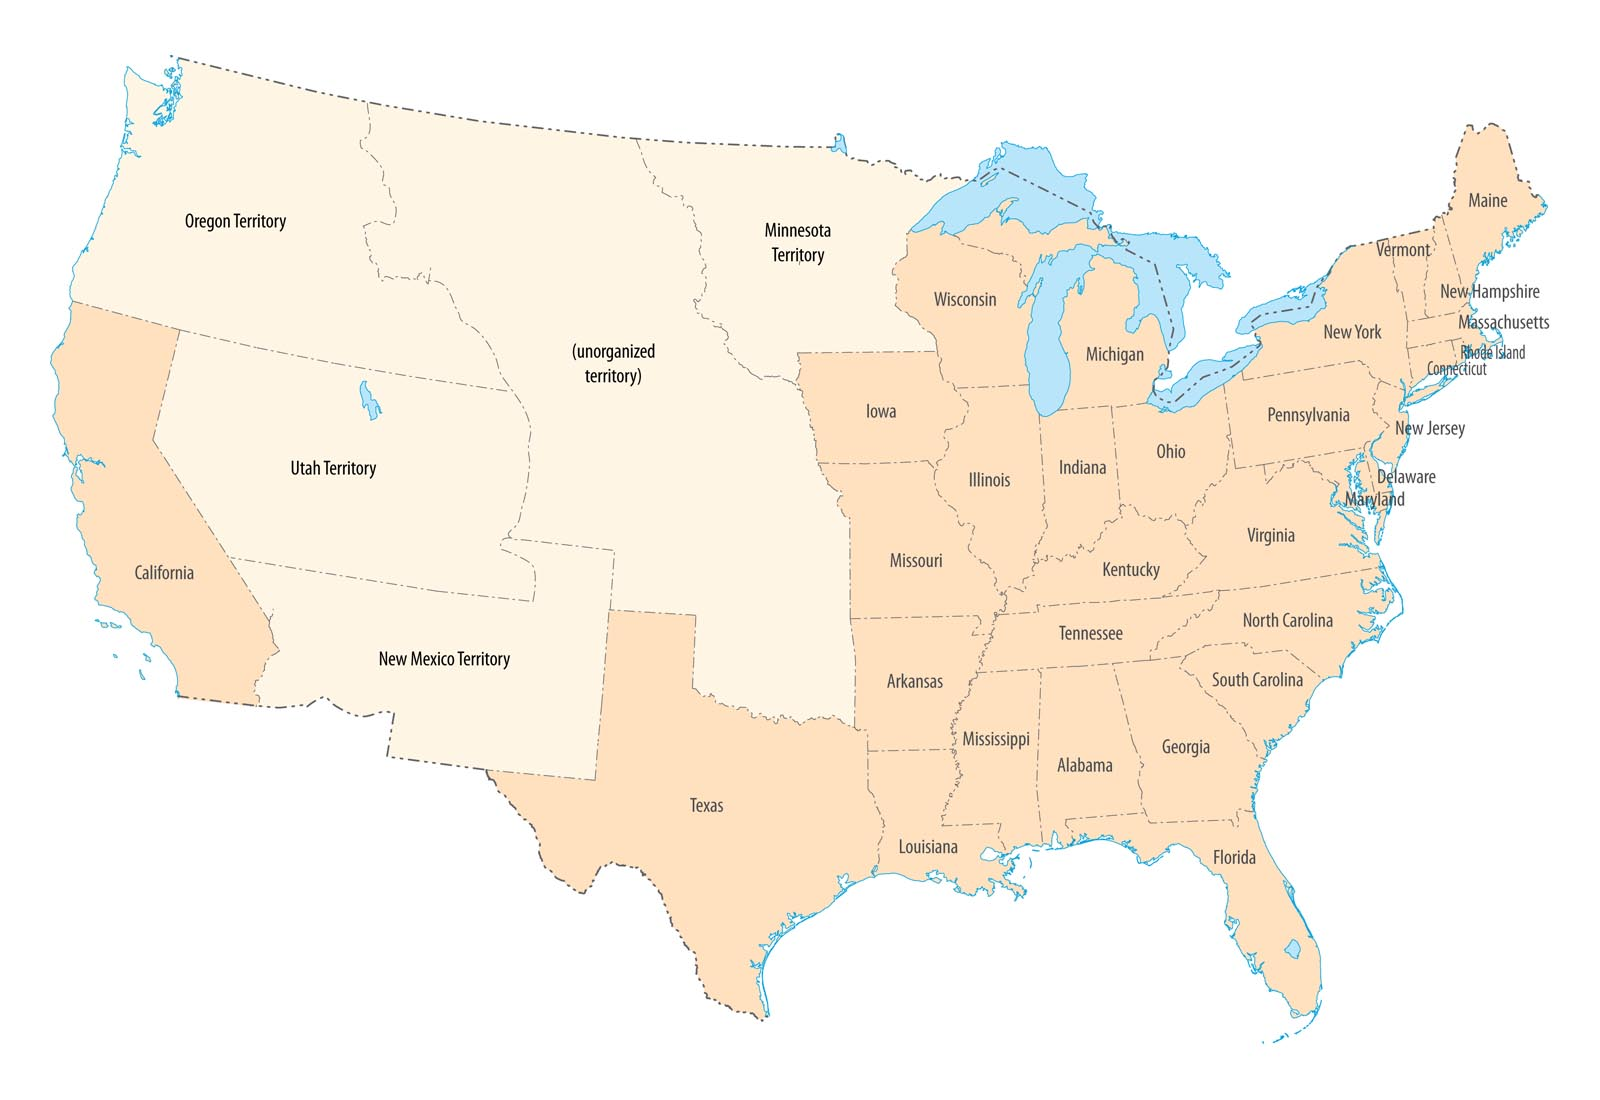 The United States and territories in 1850